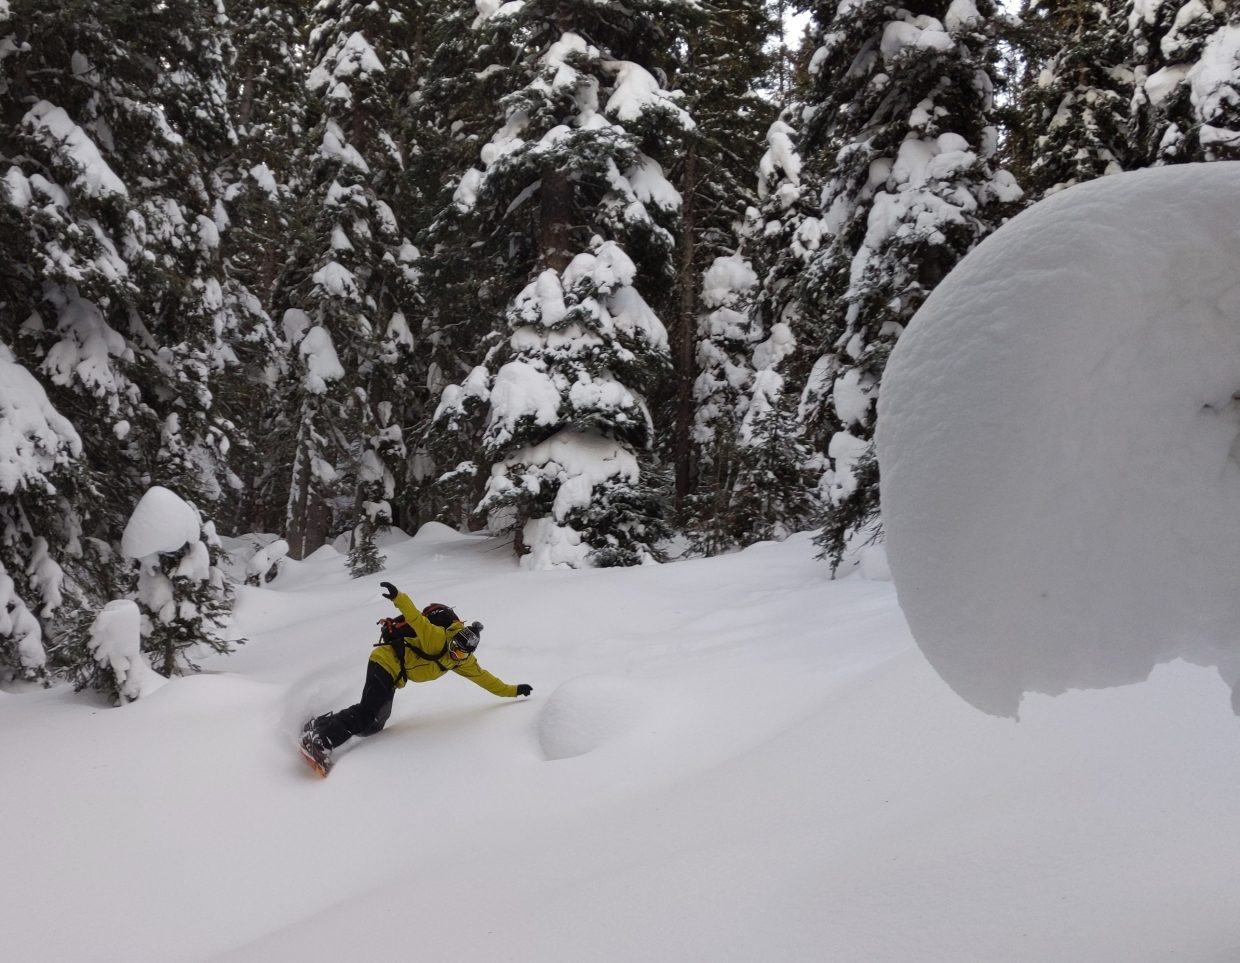 Matthew Wood shares his adventures snowboarding on Rabbit Ears Pass.